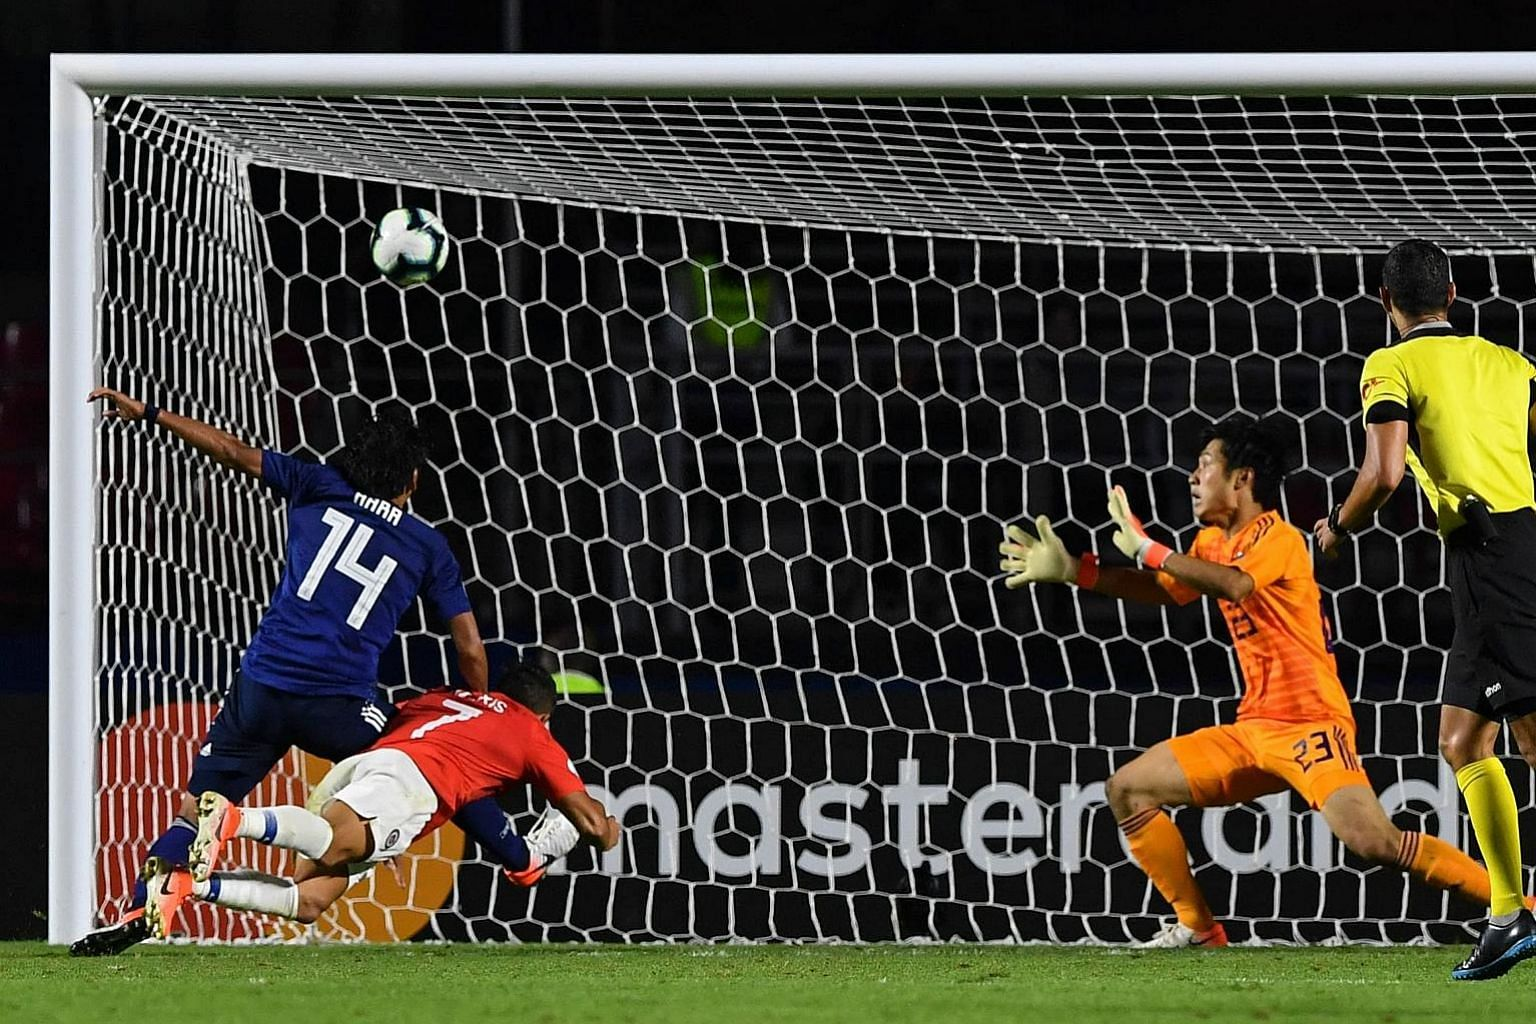 Chile's Alexis Sanchez scoring with a diving header in his side's 4-0 Copa America win over tournament guests Japan on Monday. It was the forward's first goal in five months.